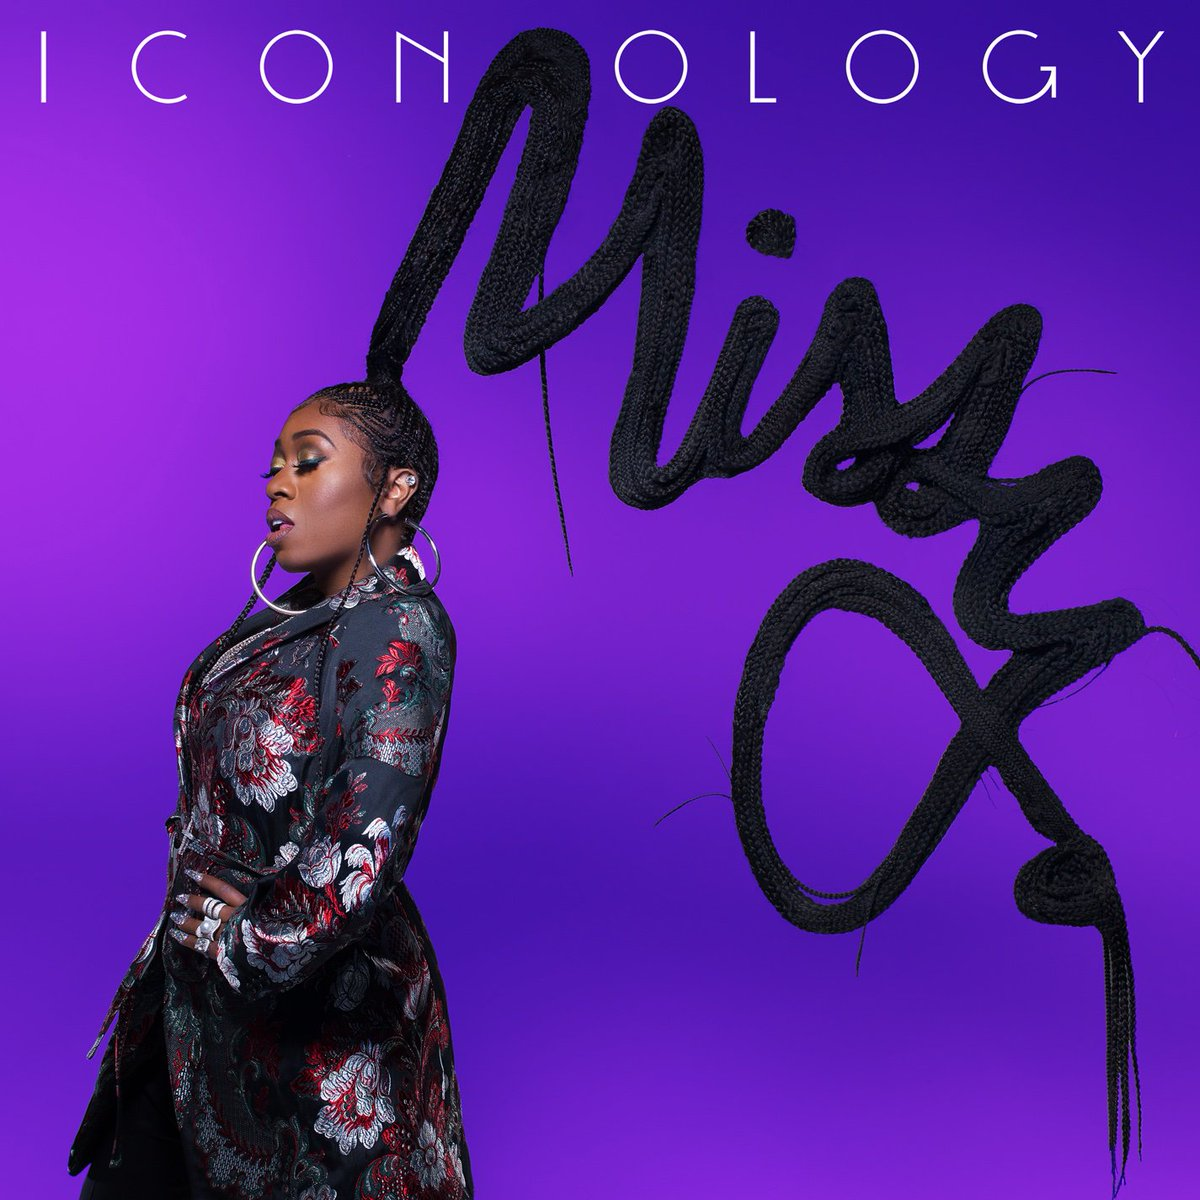 Are y'all ready for the Drip 🚰💧 @MissyElliott is bringing us #Iconology At midnight #ThrowItBack